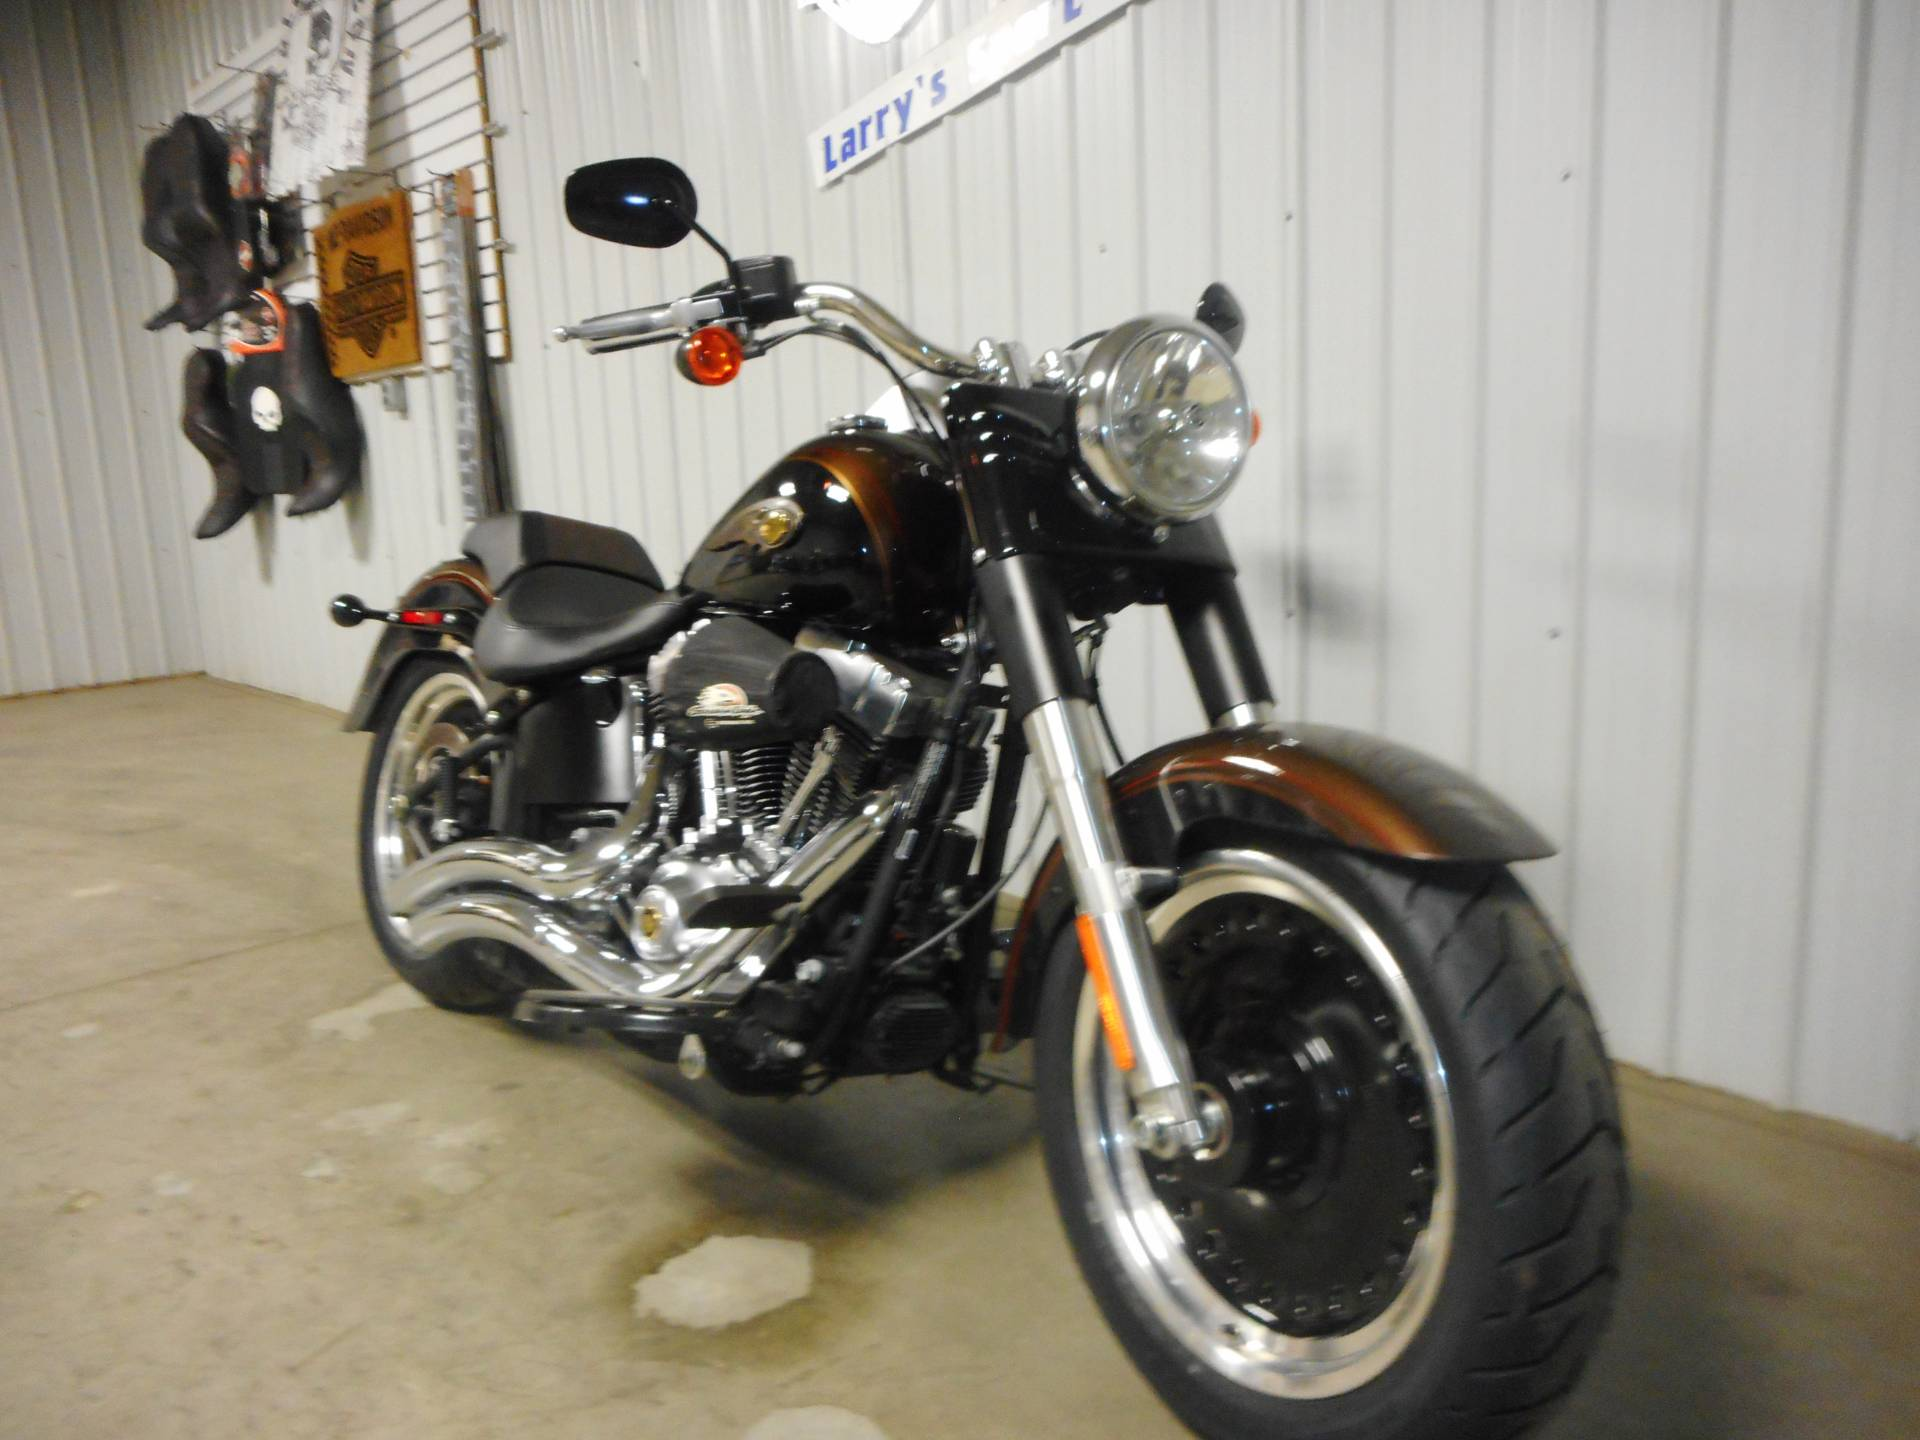 2013 Harley-Davidson Softail® Fat Boy® Lo 110th Anniversary Edition in Galeton, Pennsylvania - Photo 2